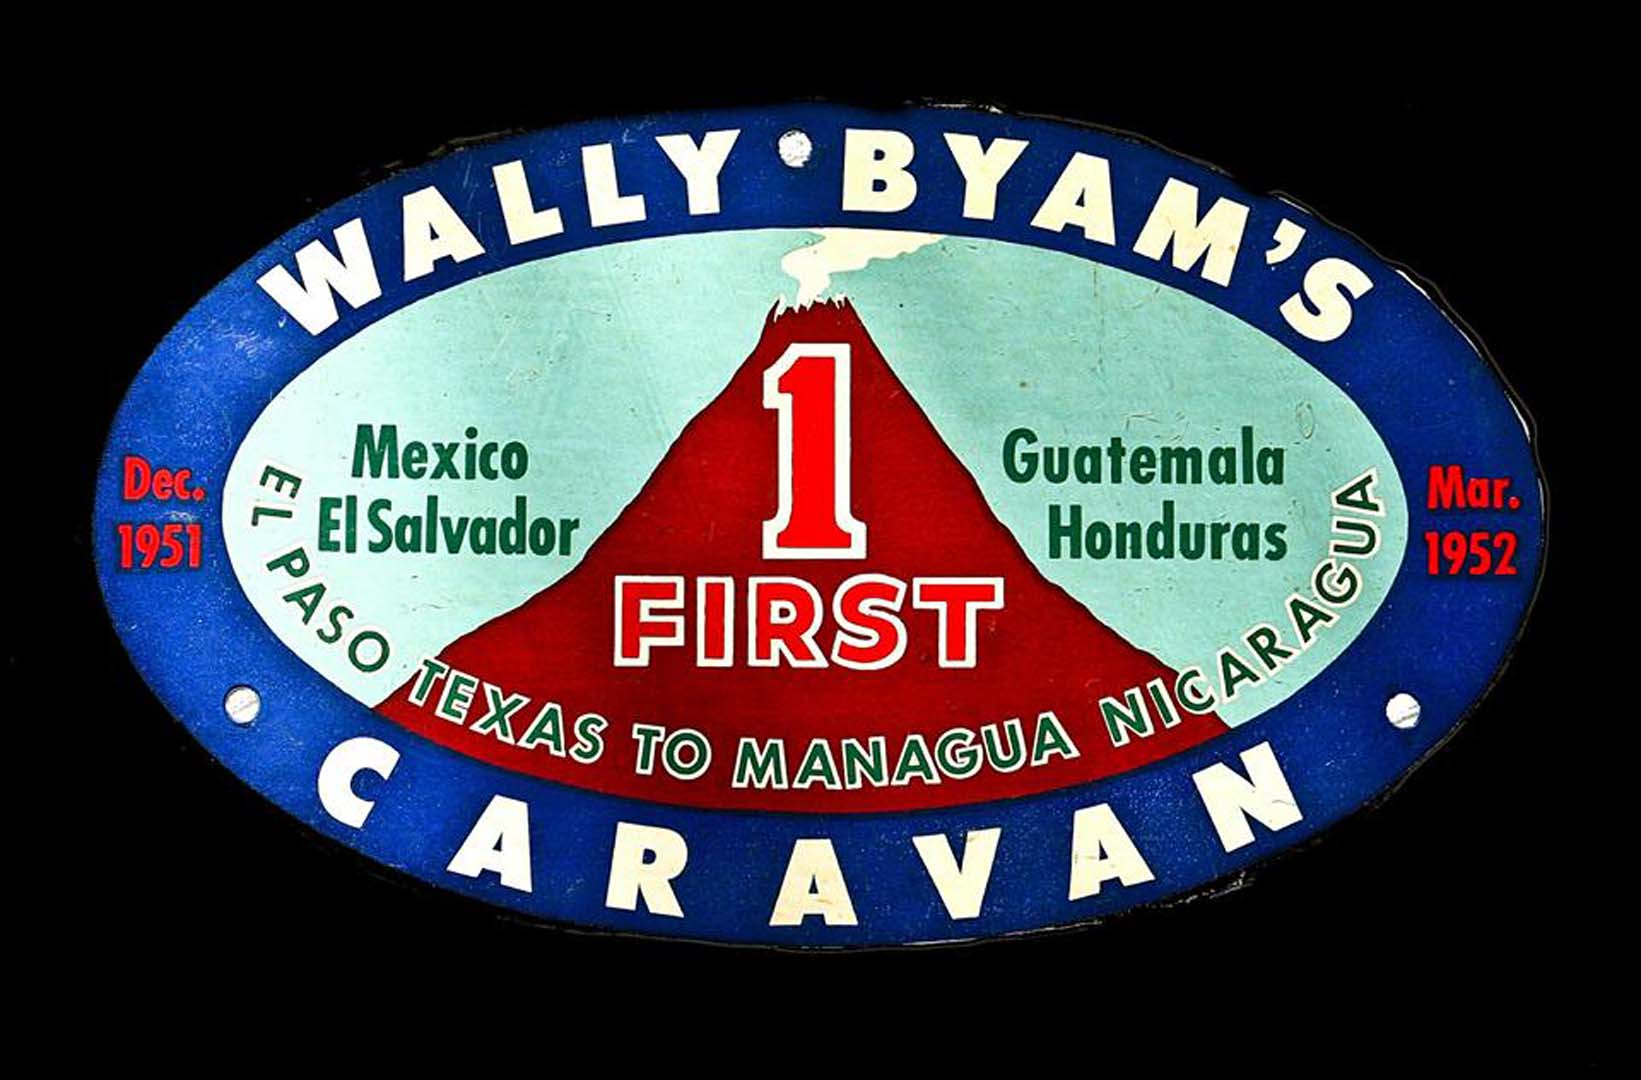 Airstream Wally Byam Mexico and Central America Caravan First 1951-19522